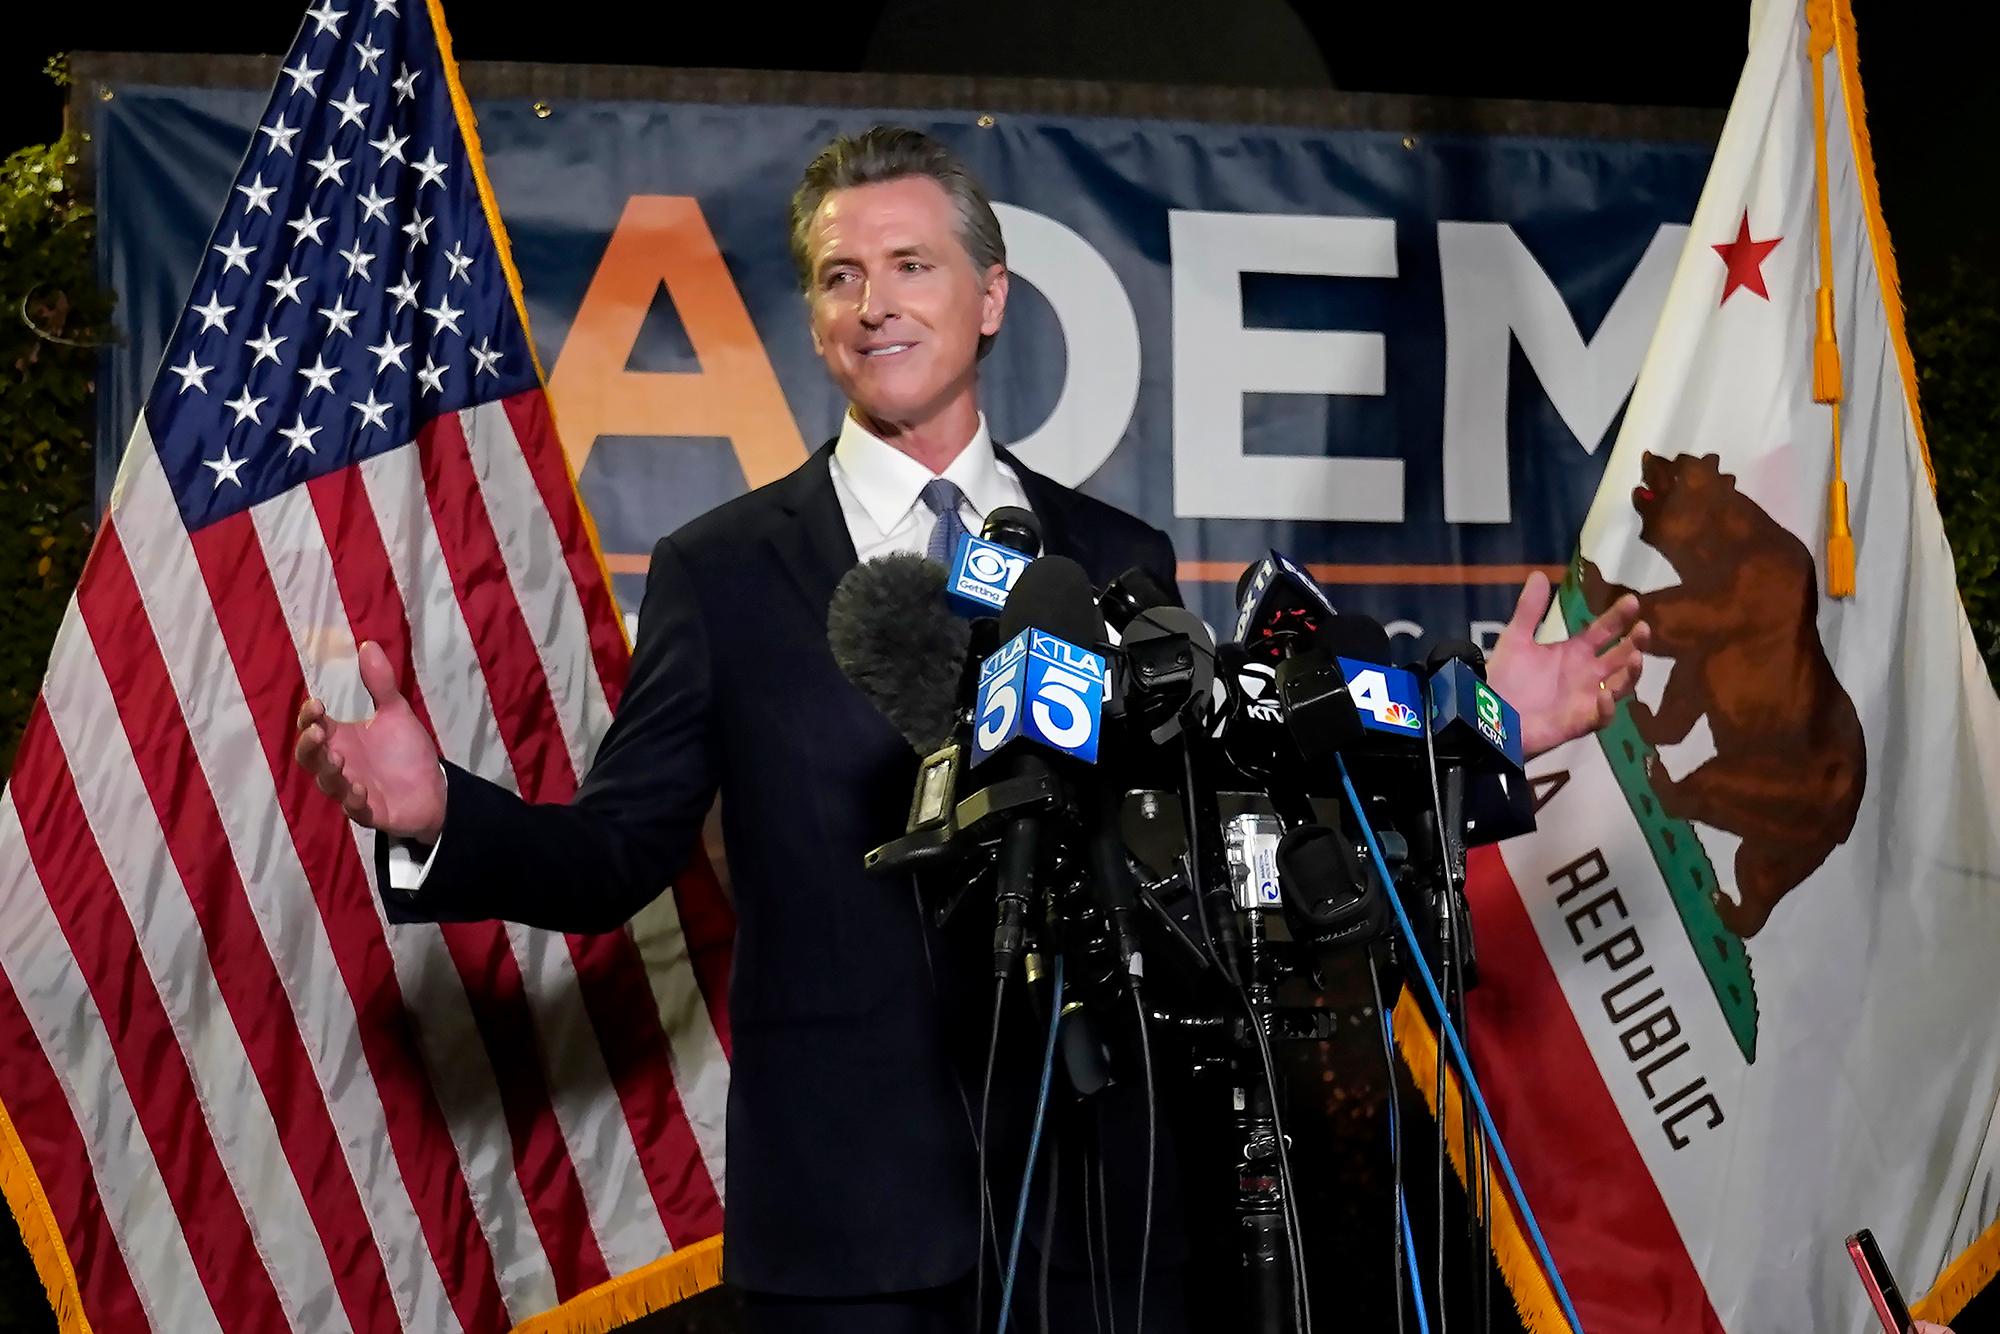 California Gov. Gavin Newsom addresses reporters after beating back the recall attempt that aimed to remove him from office at the John L. Burton California Democratic Party headquarters in Sacramento, on Tuesday.